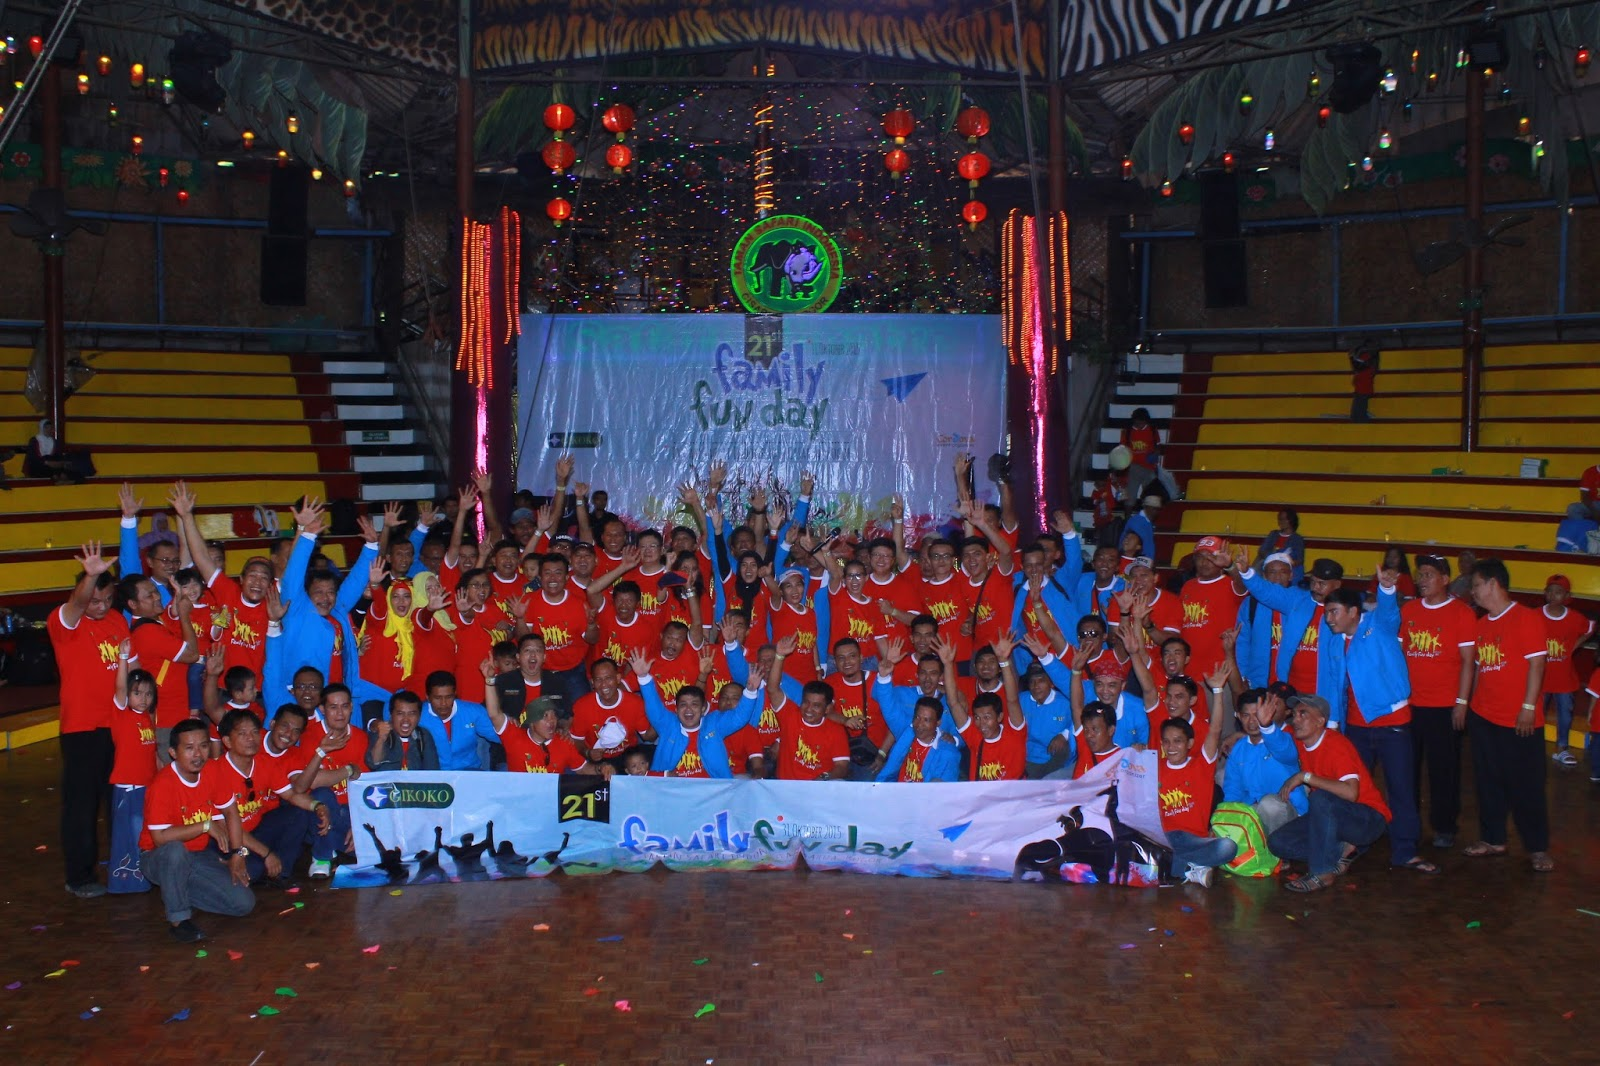 FAMILY GATHERING 2015 PT GIKOKO KOGYO INDONESIA IN TAMAN SAFARI